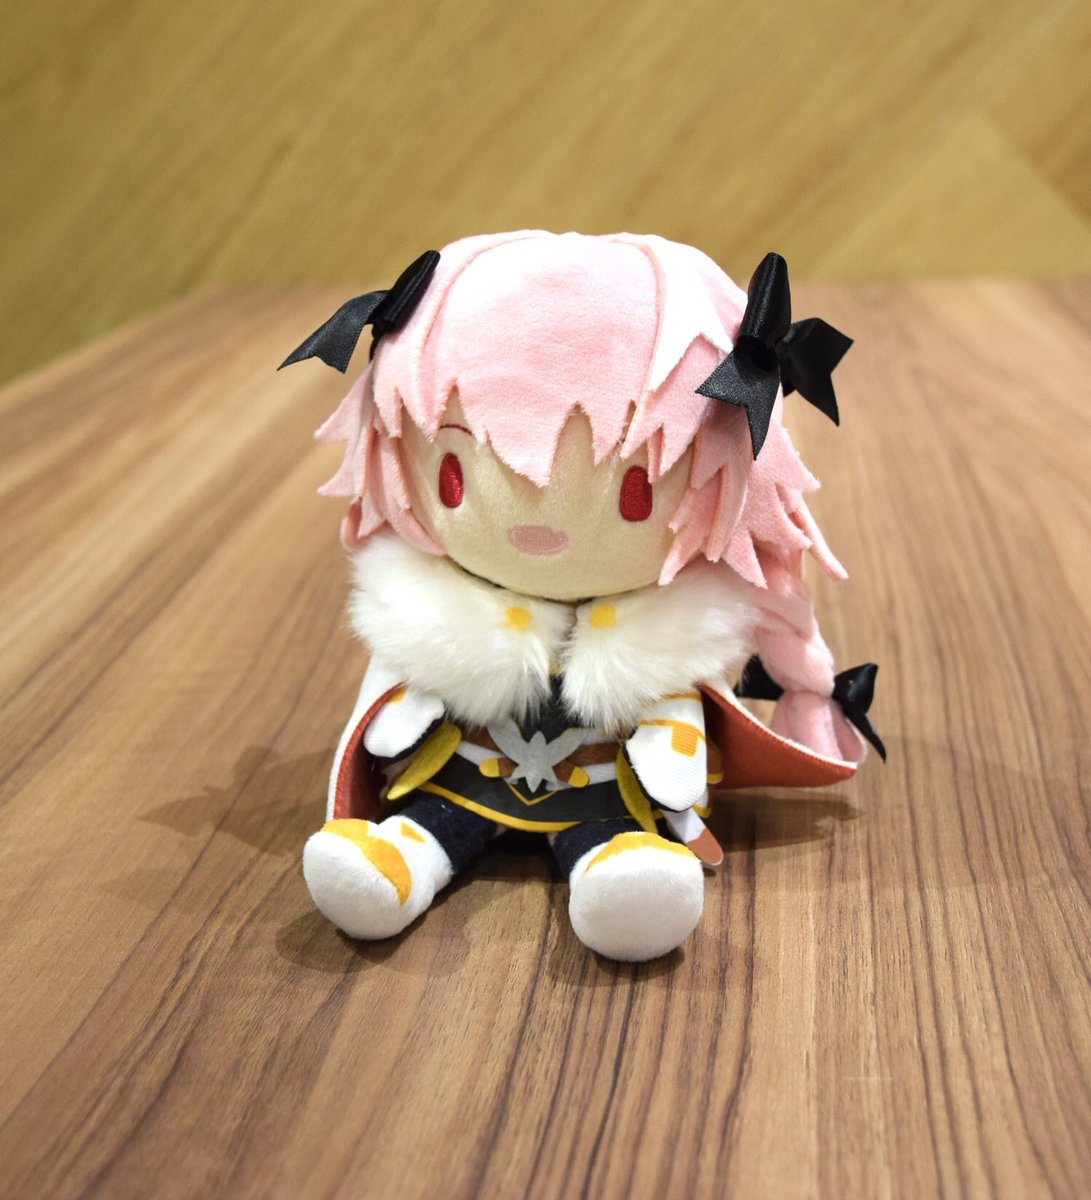 """Astolfo Plushie 🚮 acosmos 🌌 on twitter: """"this astolfo plushie is so cute"""